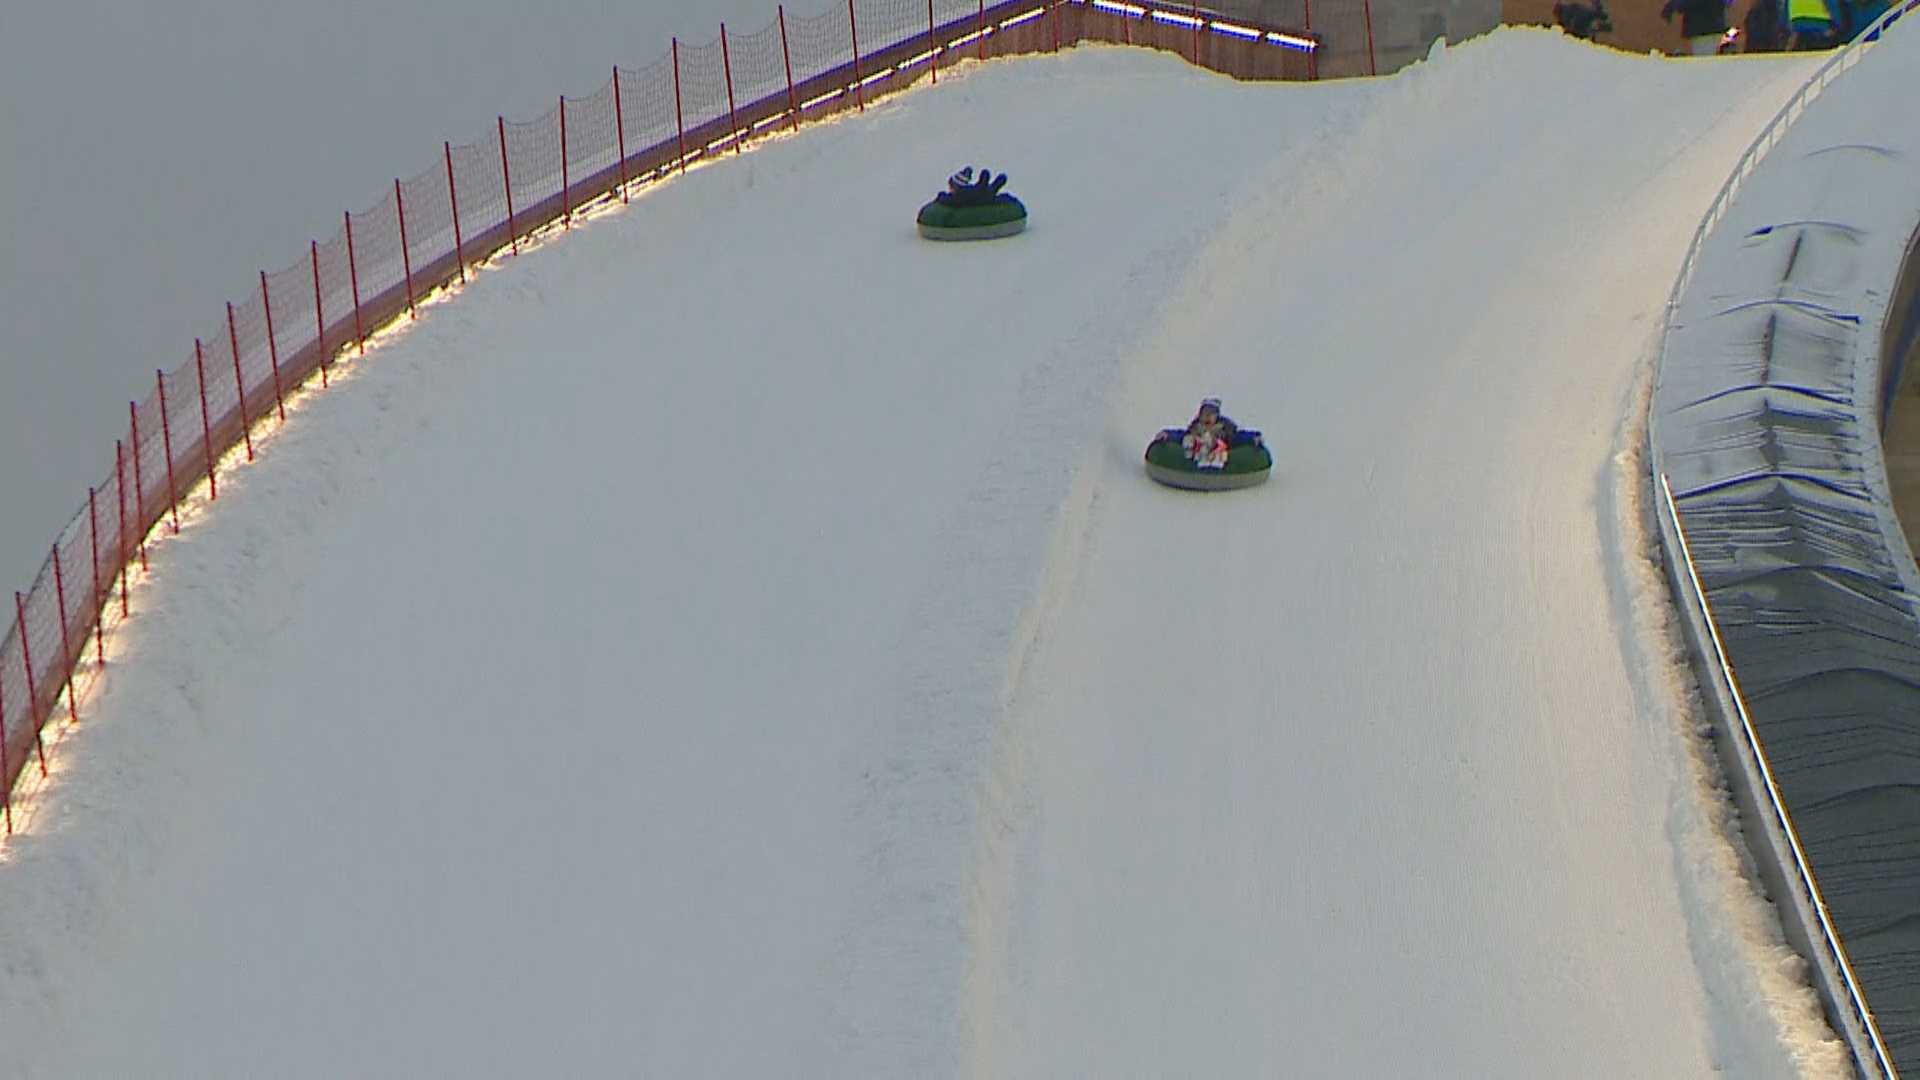 Ariens Hill holds grand-opening, December 21, 2017. (WLUK)<p></p>